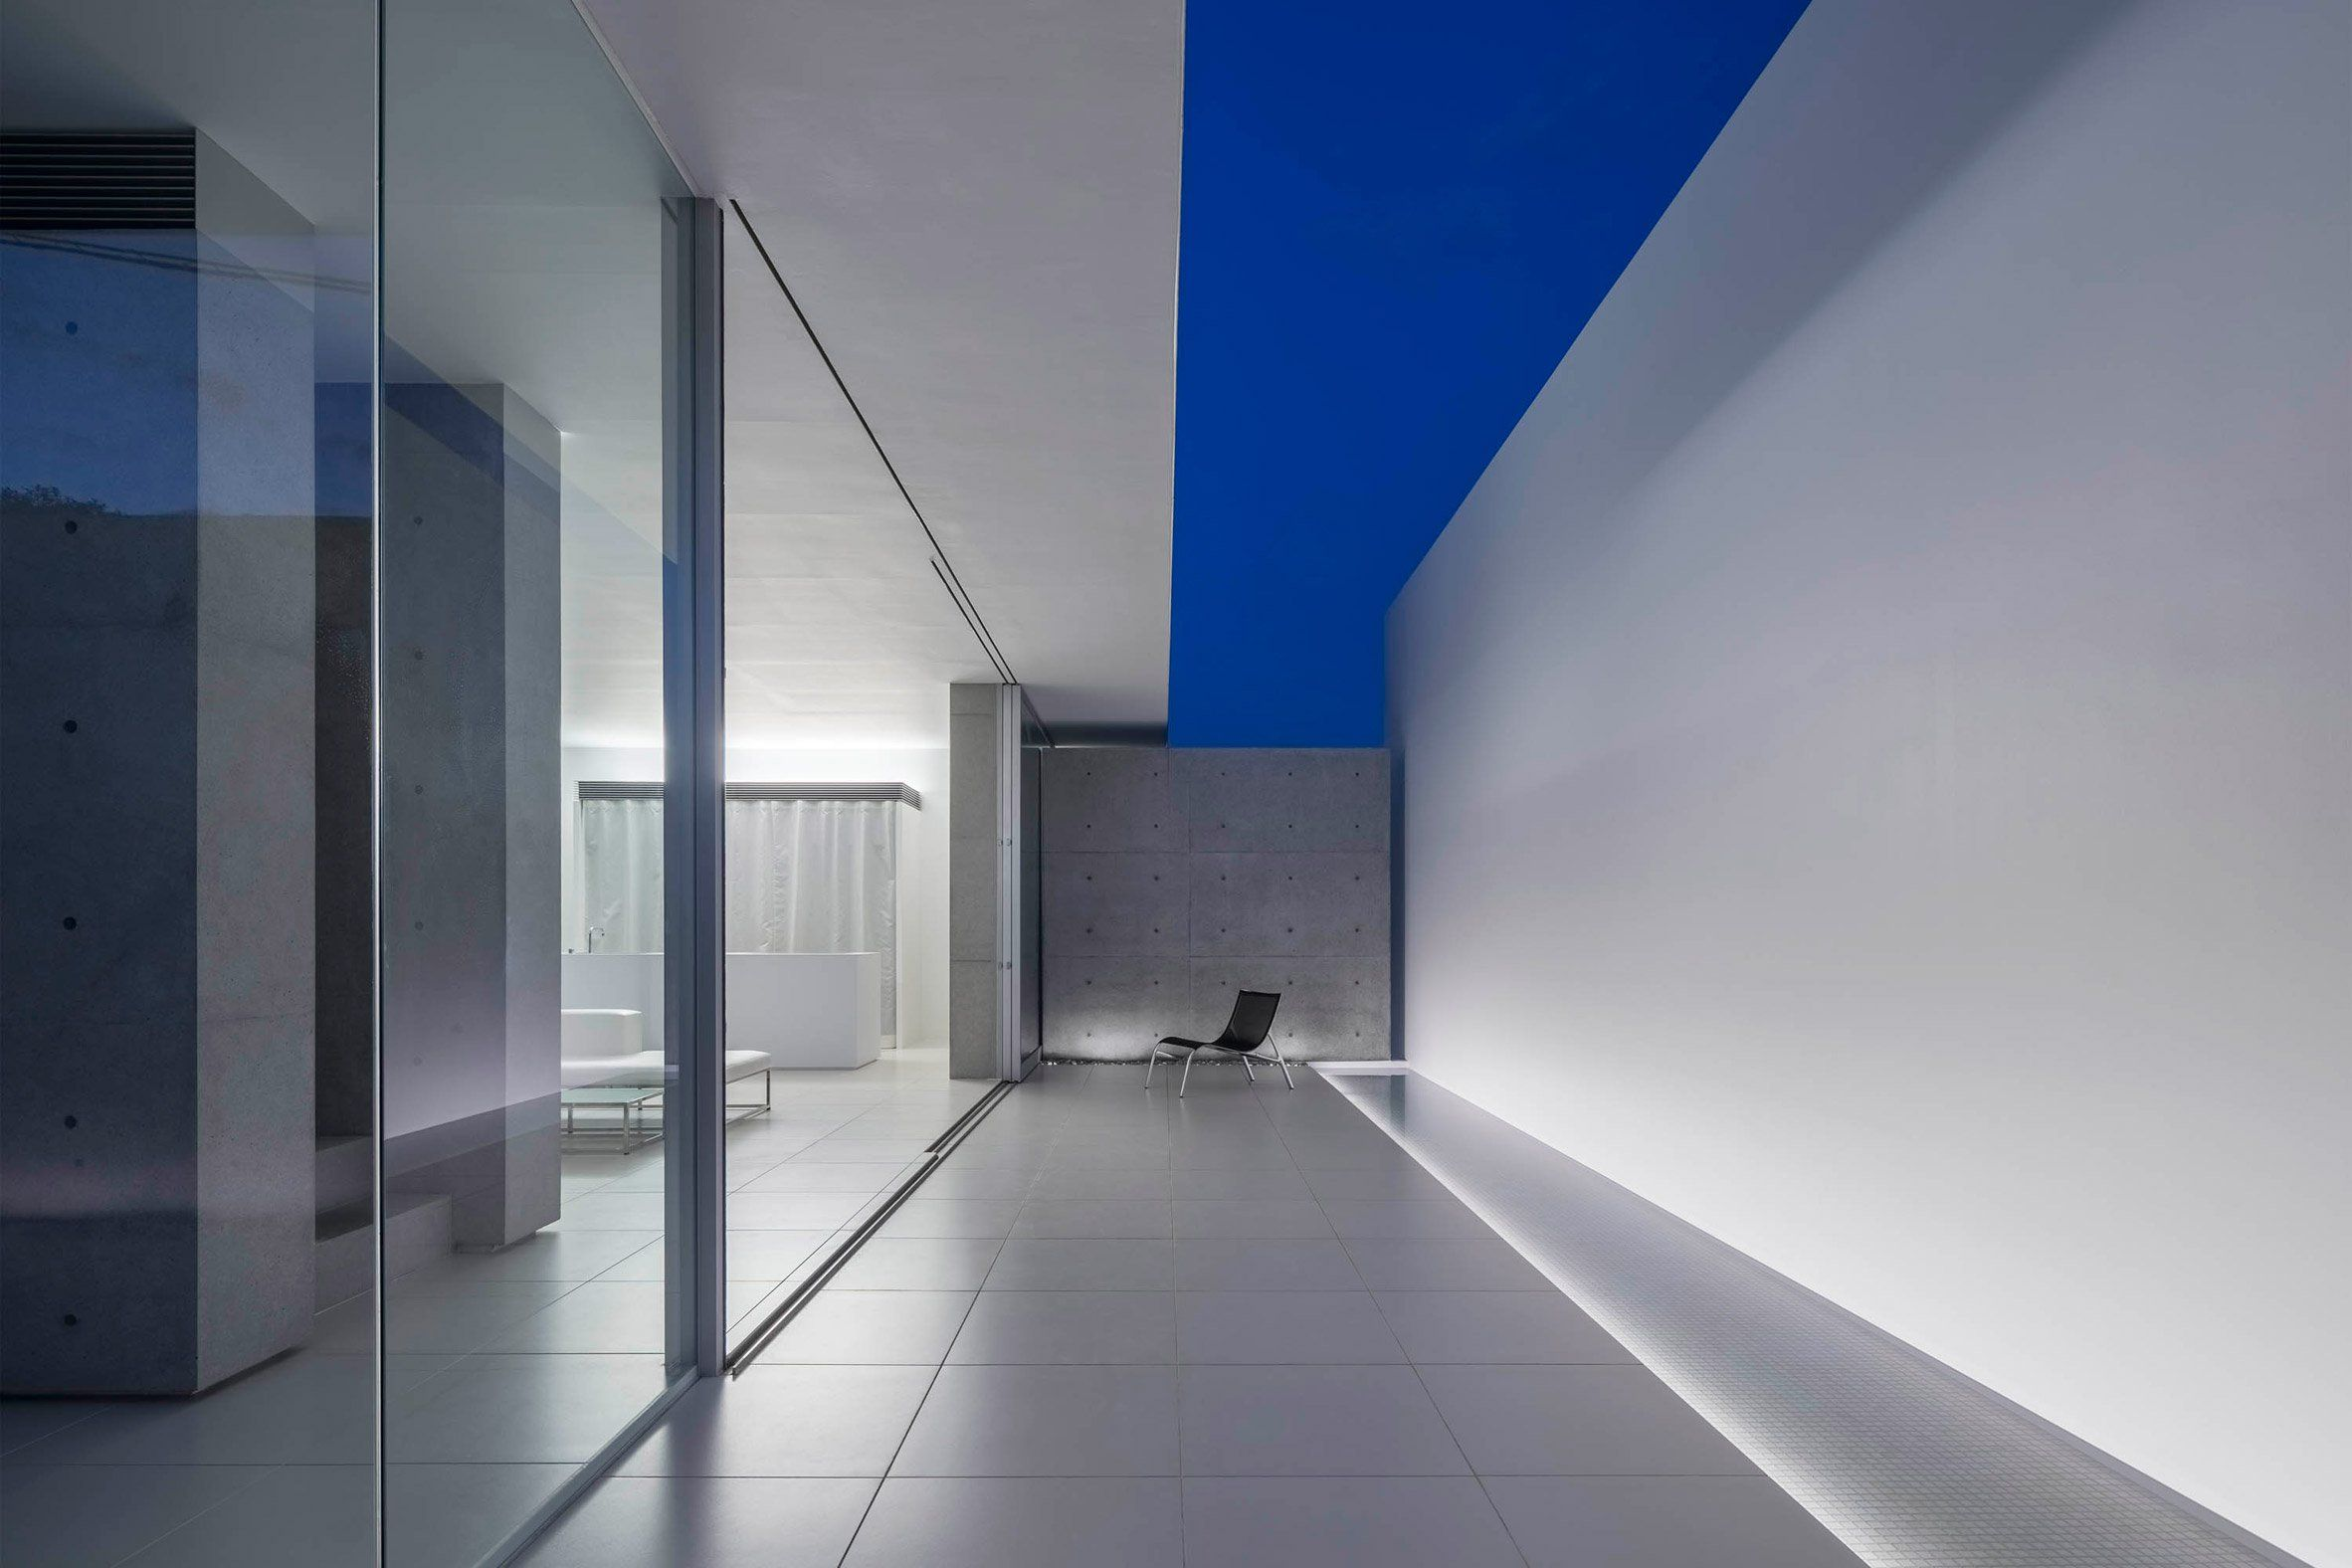 Three L Shaped Structural Sections With Wafer Thin Edges Wrap Around Concrete External Walls And Glazed Internal Partitions At Concrete Wall Architect Concrete